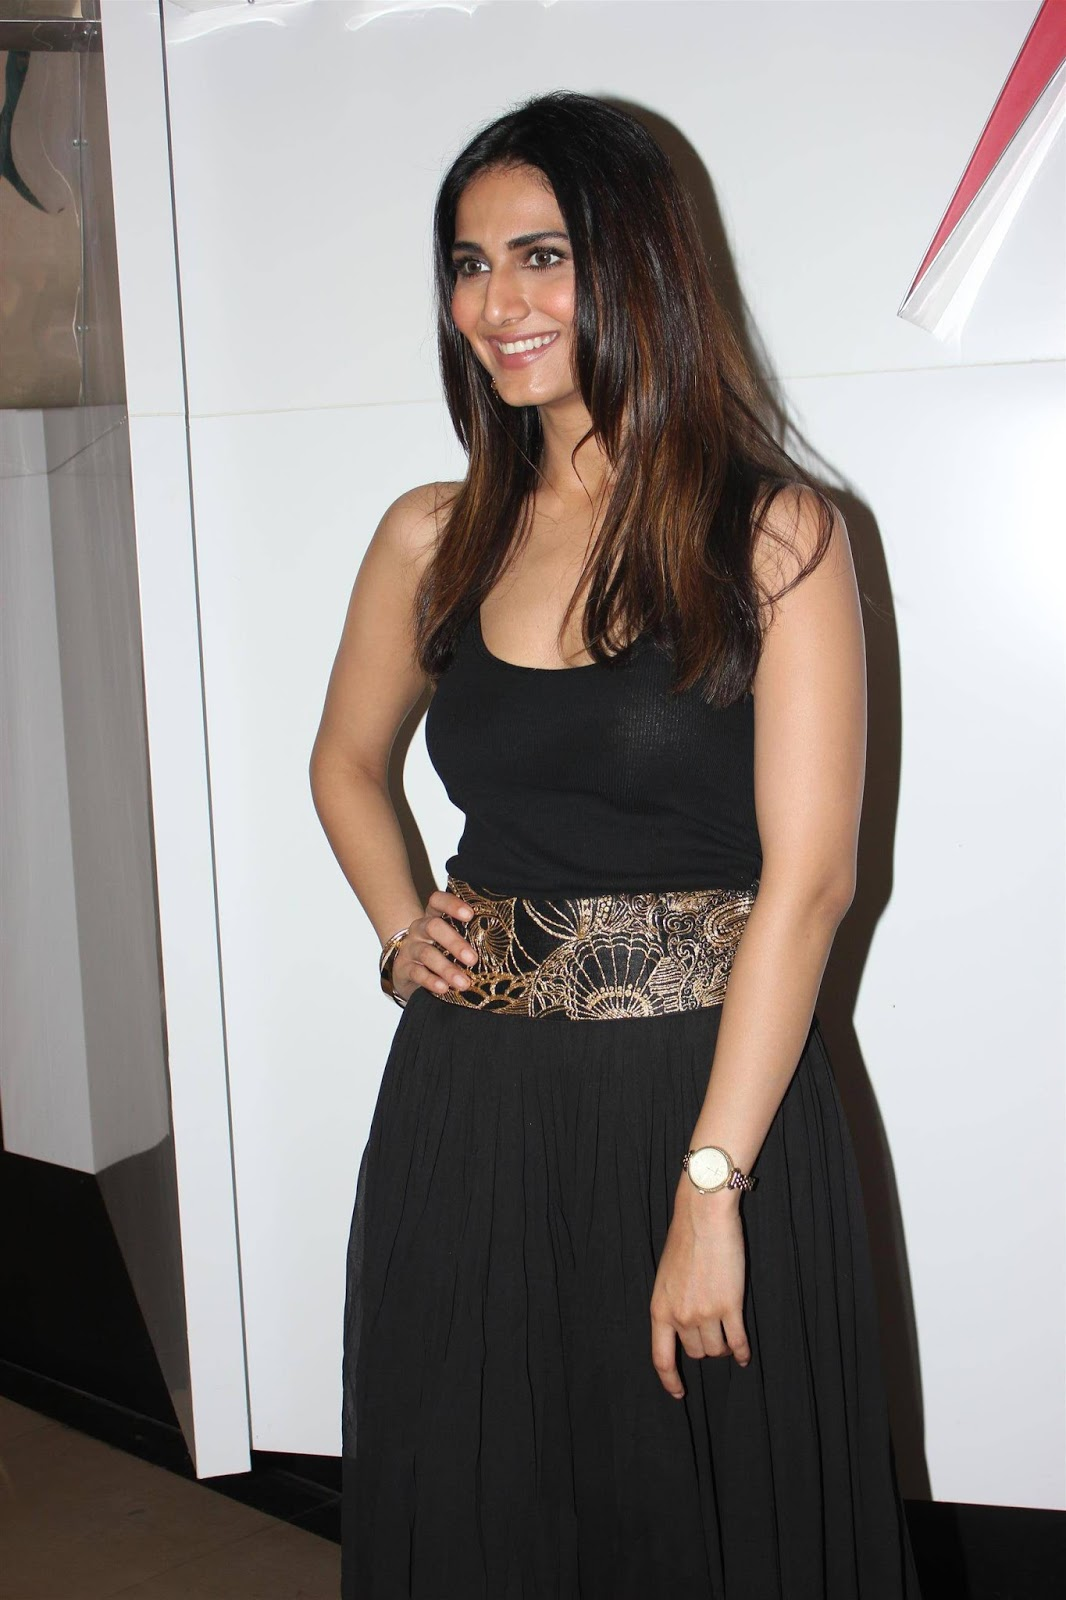 Glamorous Vaani Kapoor Hot Photos In Black Dress